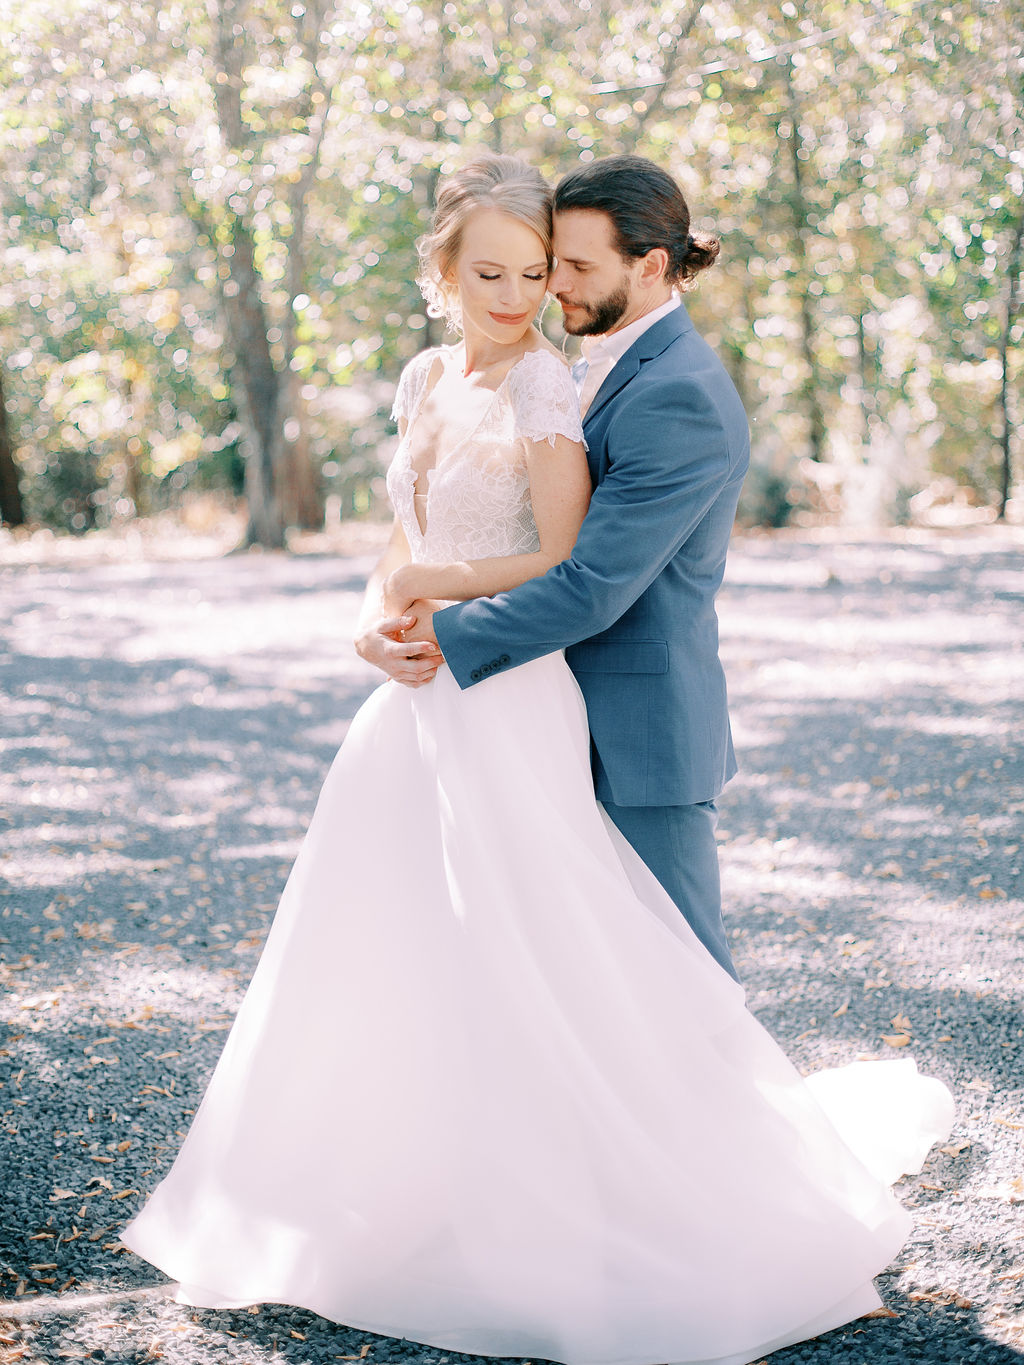 Wedding attire: Ethereal Wedding Inspiration at The White Sparrow